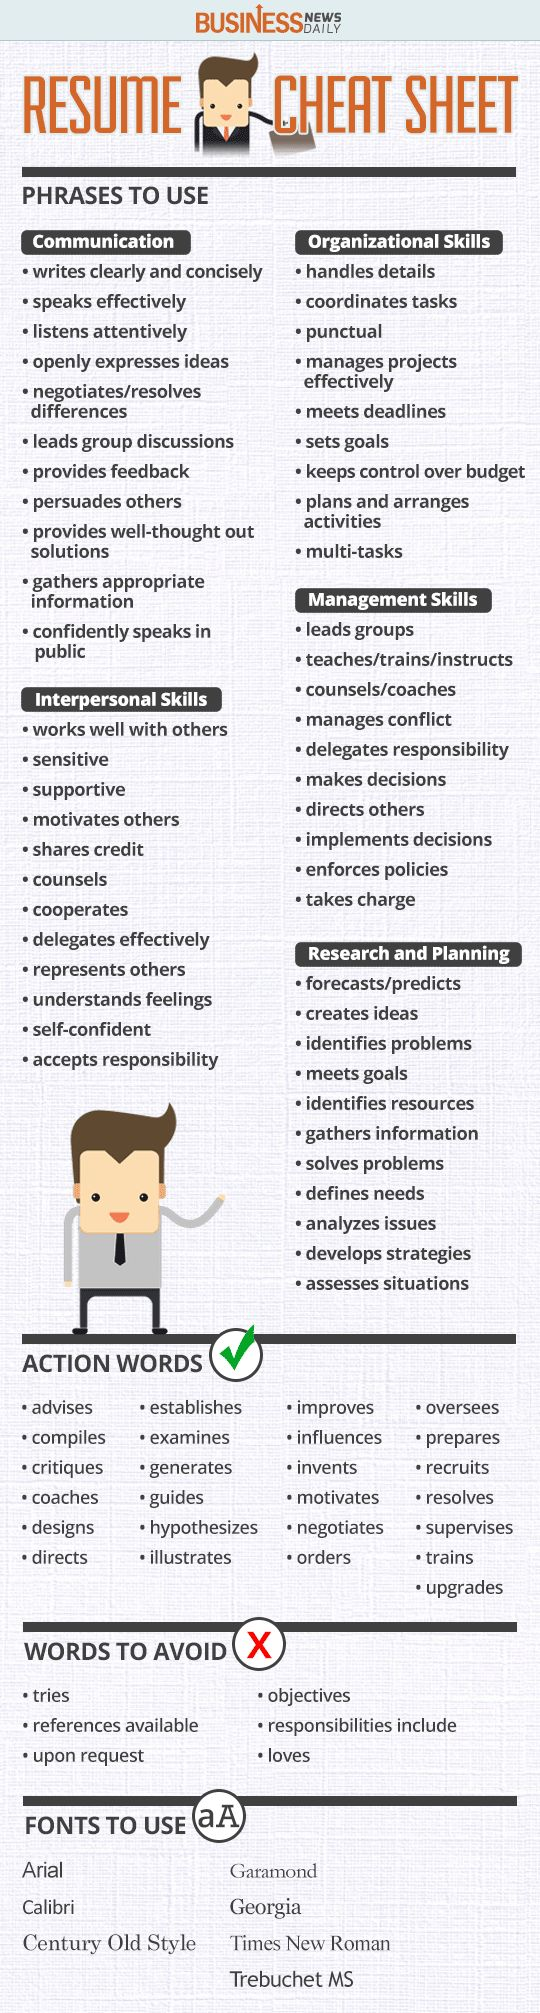 Picnictoimpeachus  Winsome  Ideas About Resume On Pinterest  Cv Format Resume Cv And  With Marvelous Resume Cheat Sheet Infographic Andrews Almost Done With A Complete Unit On Employment Which With Attractive Marketing Project Manager Resume Also Experience Resume Example In Addition Telemarketer Resume And Starting A Resume As Well As What To Write On Resume Additionally Example Of A Resume Summary From Pinterestcom With Picnictoimpeachus  Marvelous  Ideas About Resume On Pinterest  Cv Format Resume Cv And  With Attractive Resume Cheat Sheet Infographic Andrews Almost Done With A Complete Unit On Employment Which And Winsome Marketing Project Manager Resume Also Experience Resume Example In Addition Telemarketer Resume From Pinterestcom